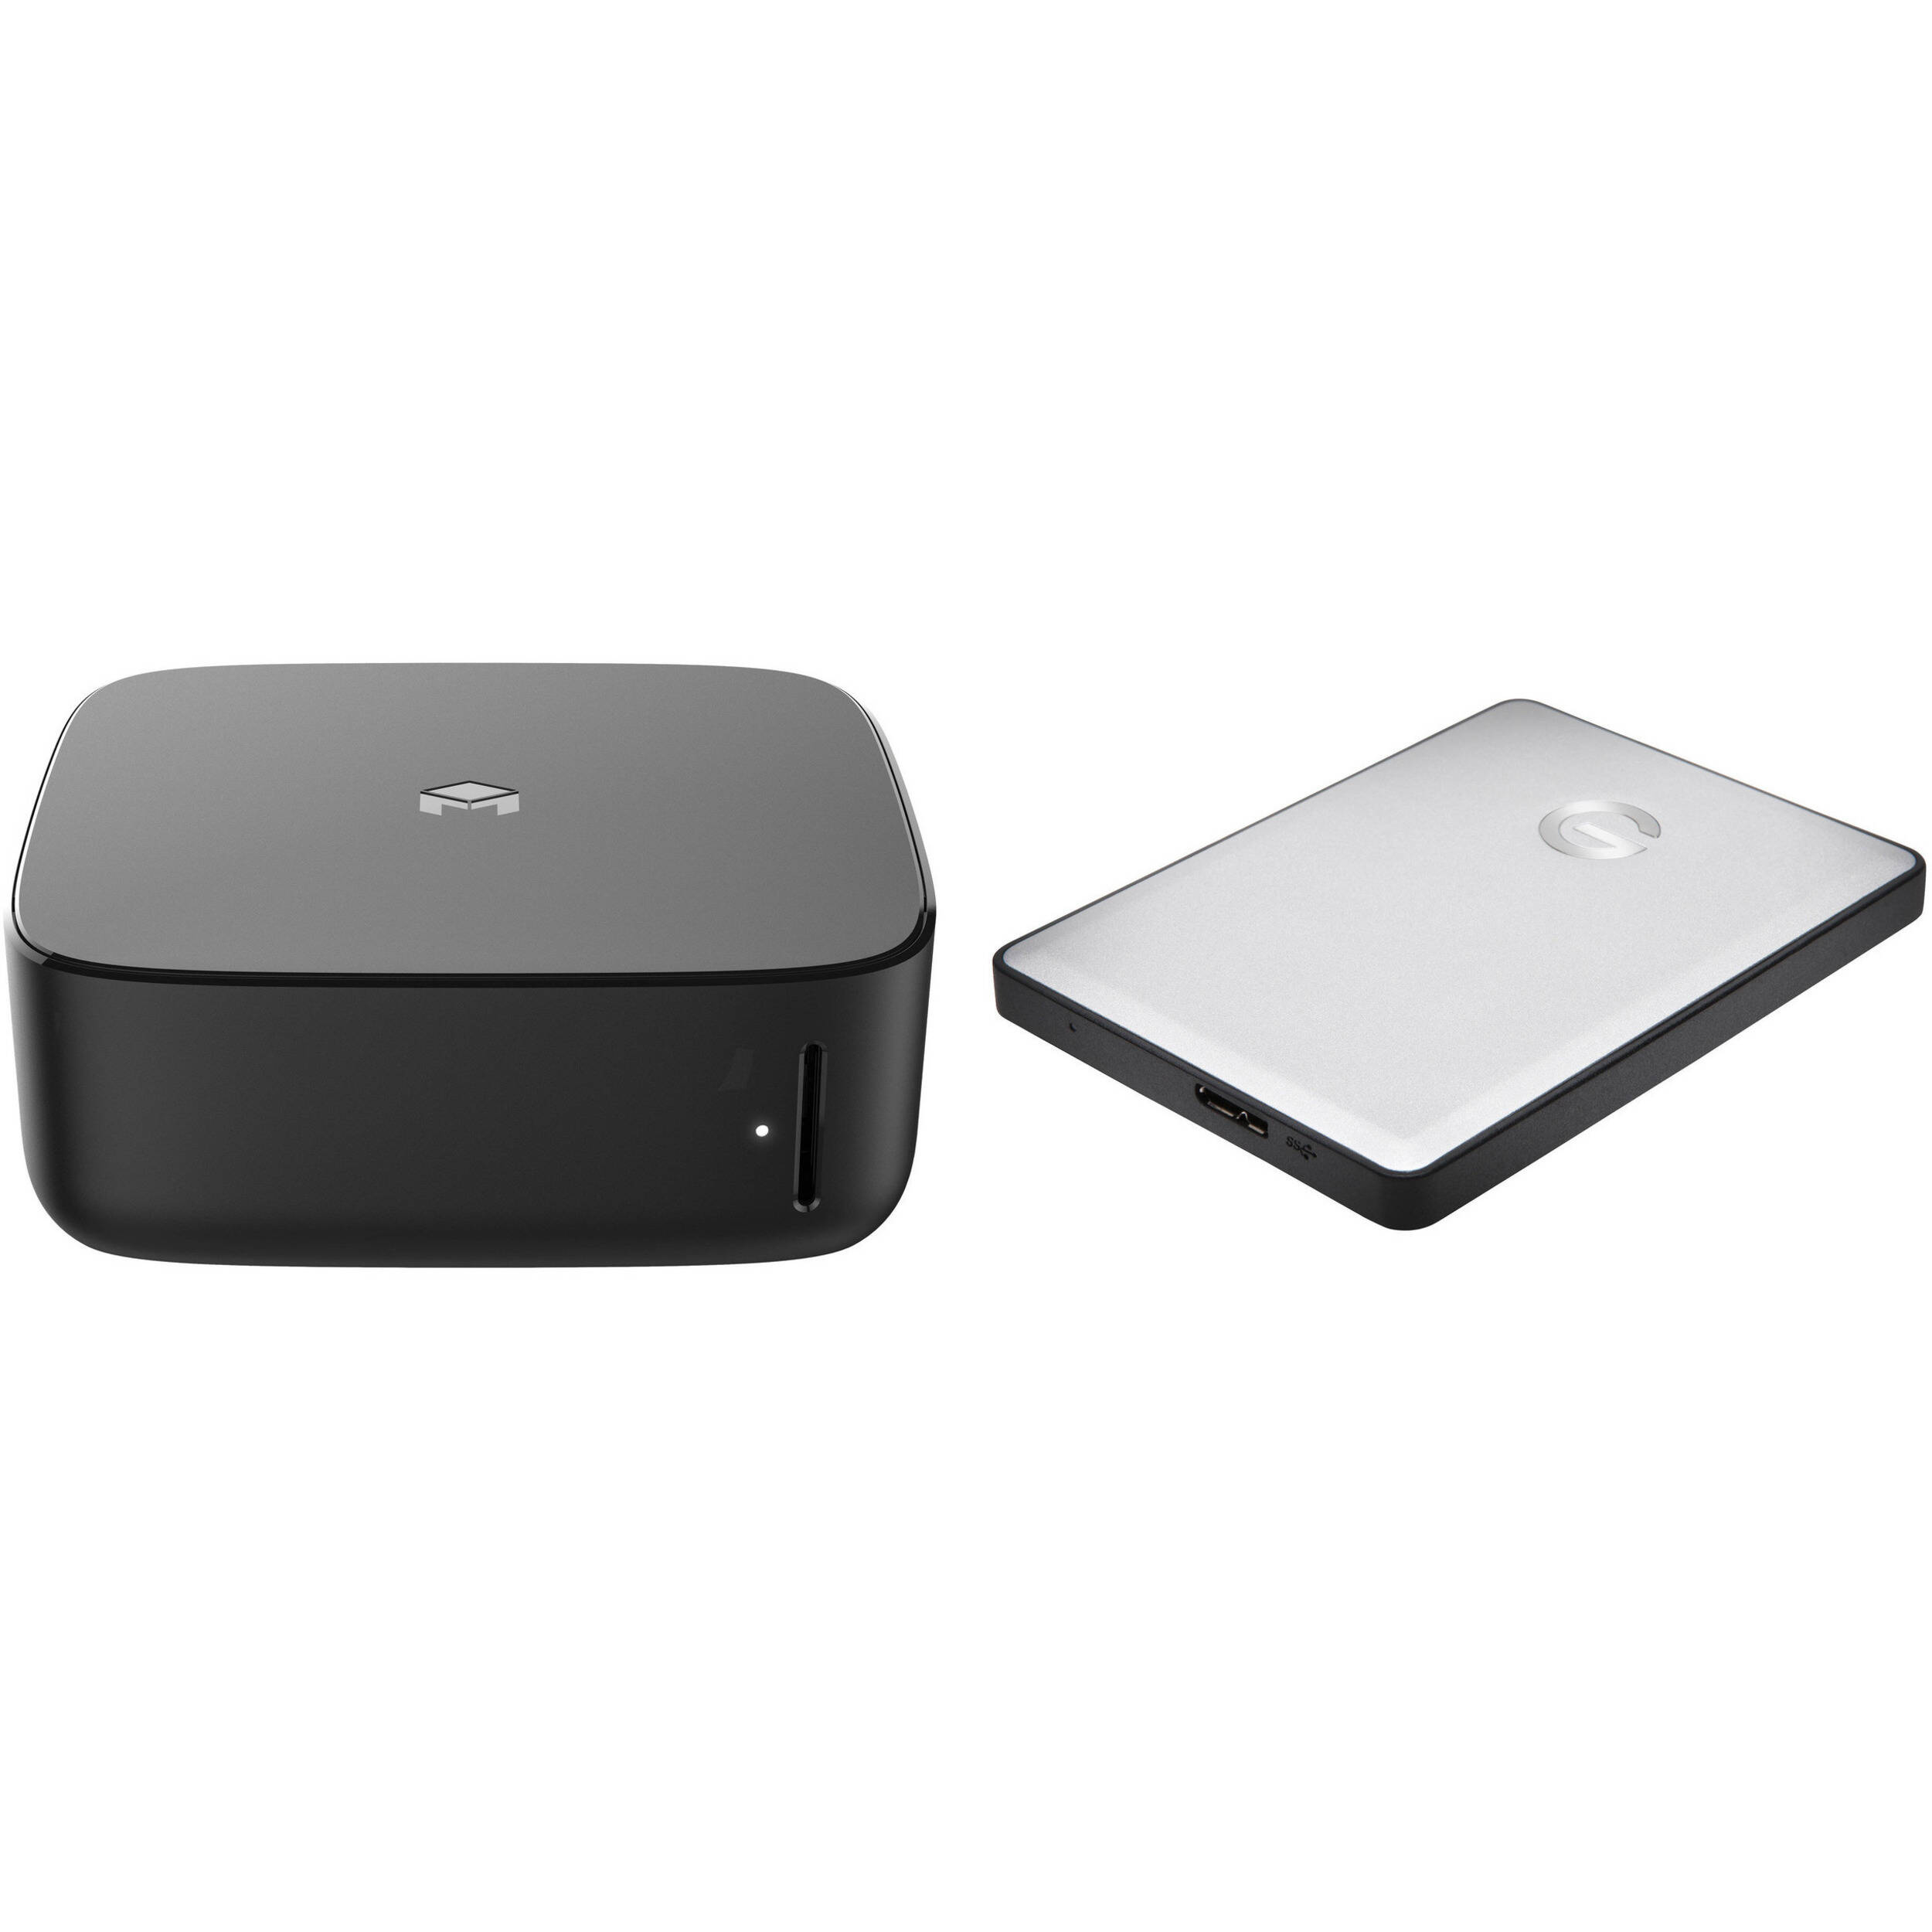 Monument Labs Personal Cloud Server with Gigabit Ethernet and Wi-Fi